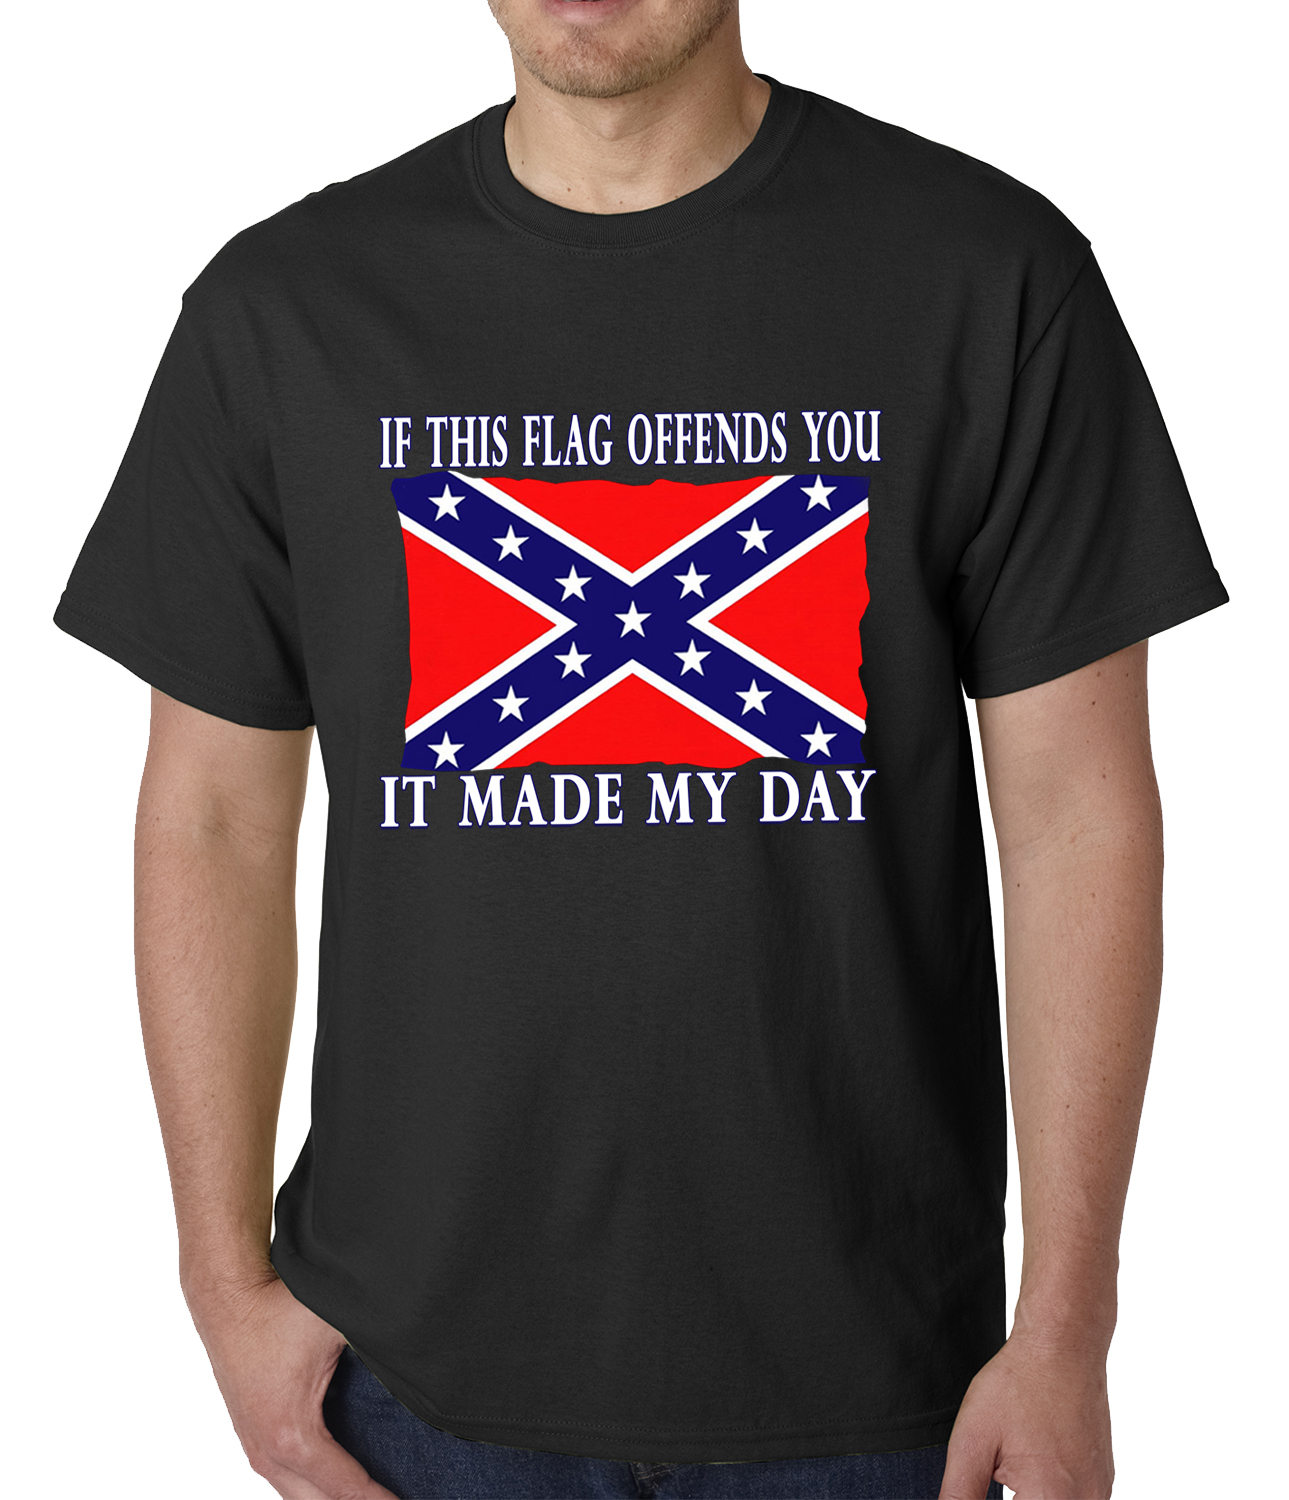 Confederate Flag Tshirt If This Flag Offends You It Made